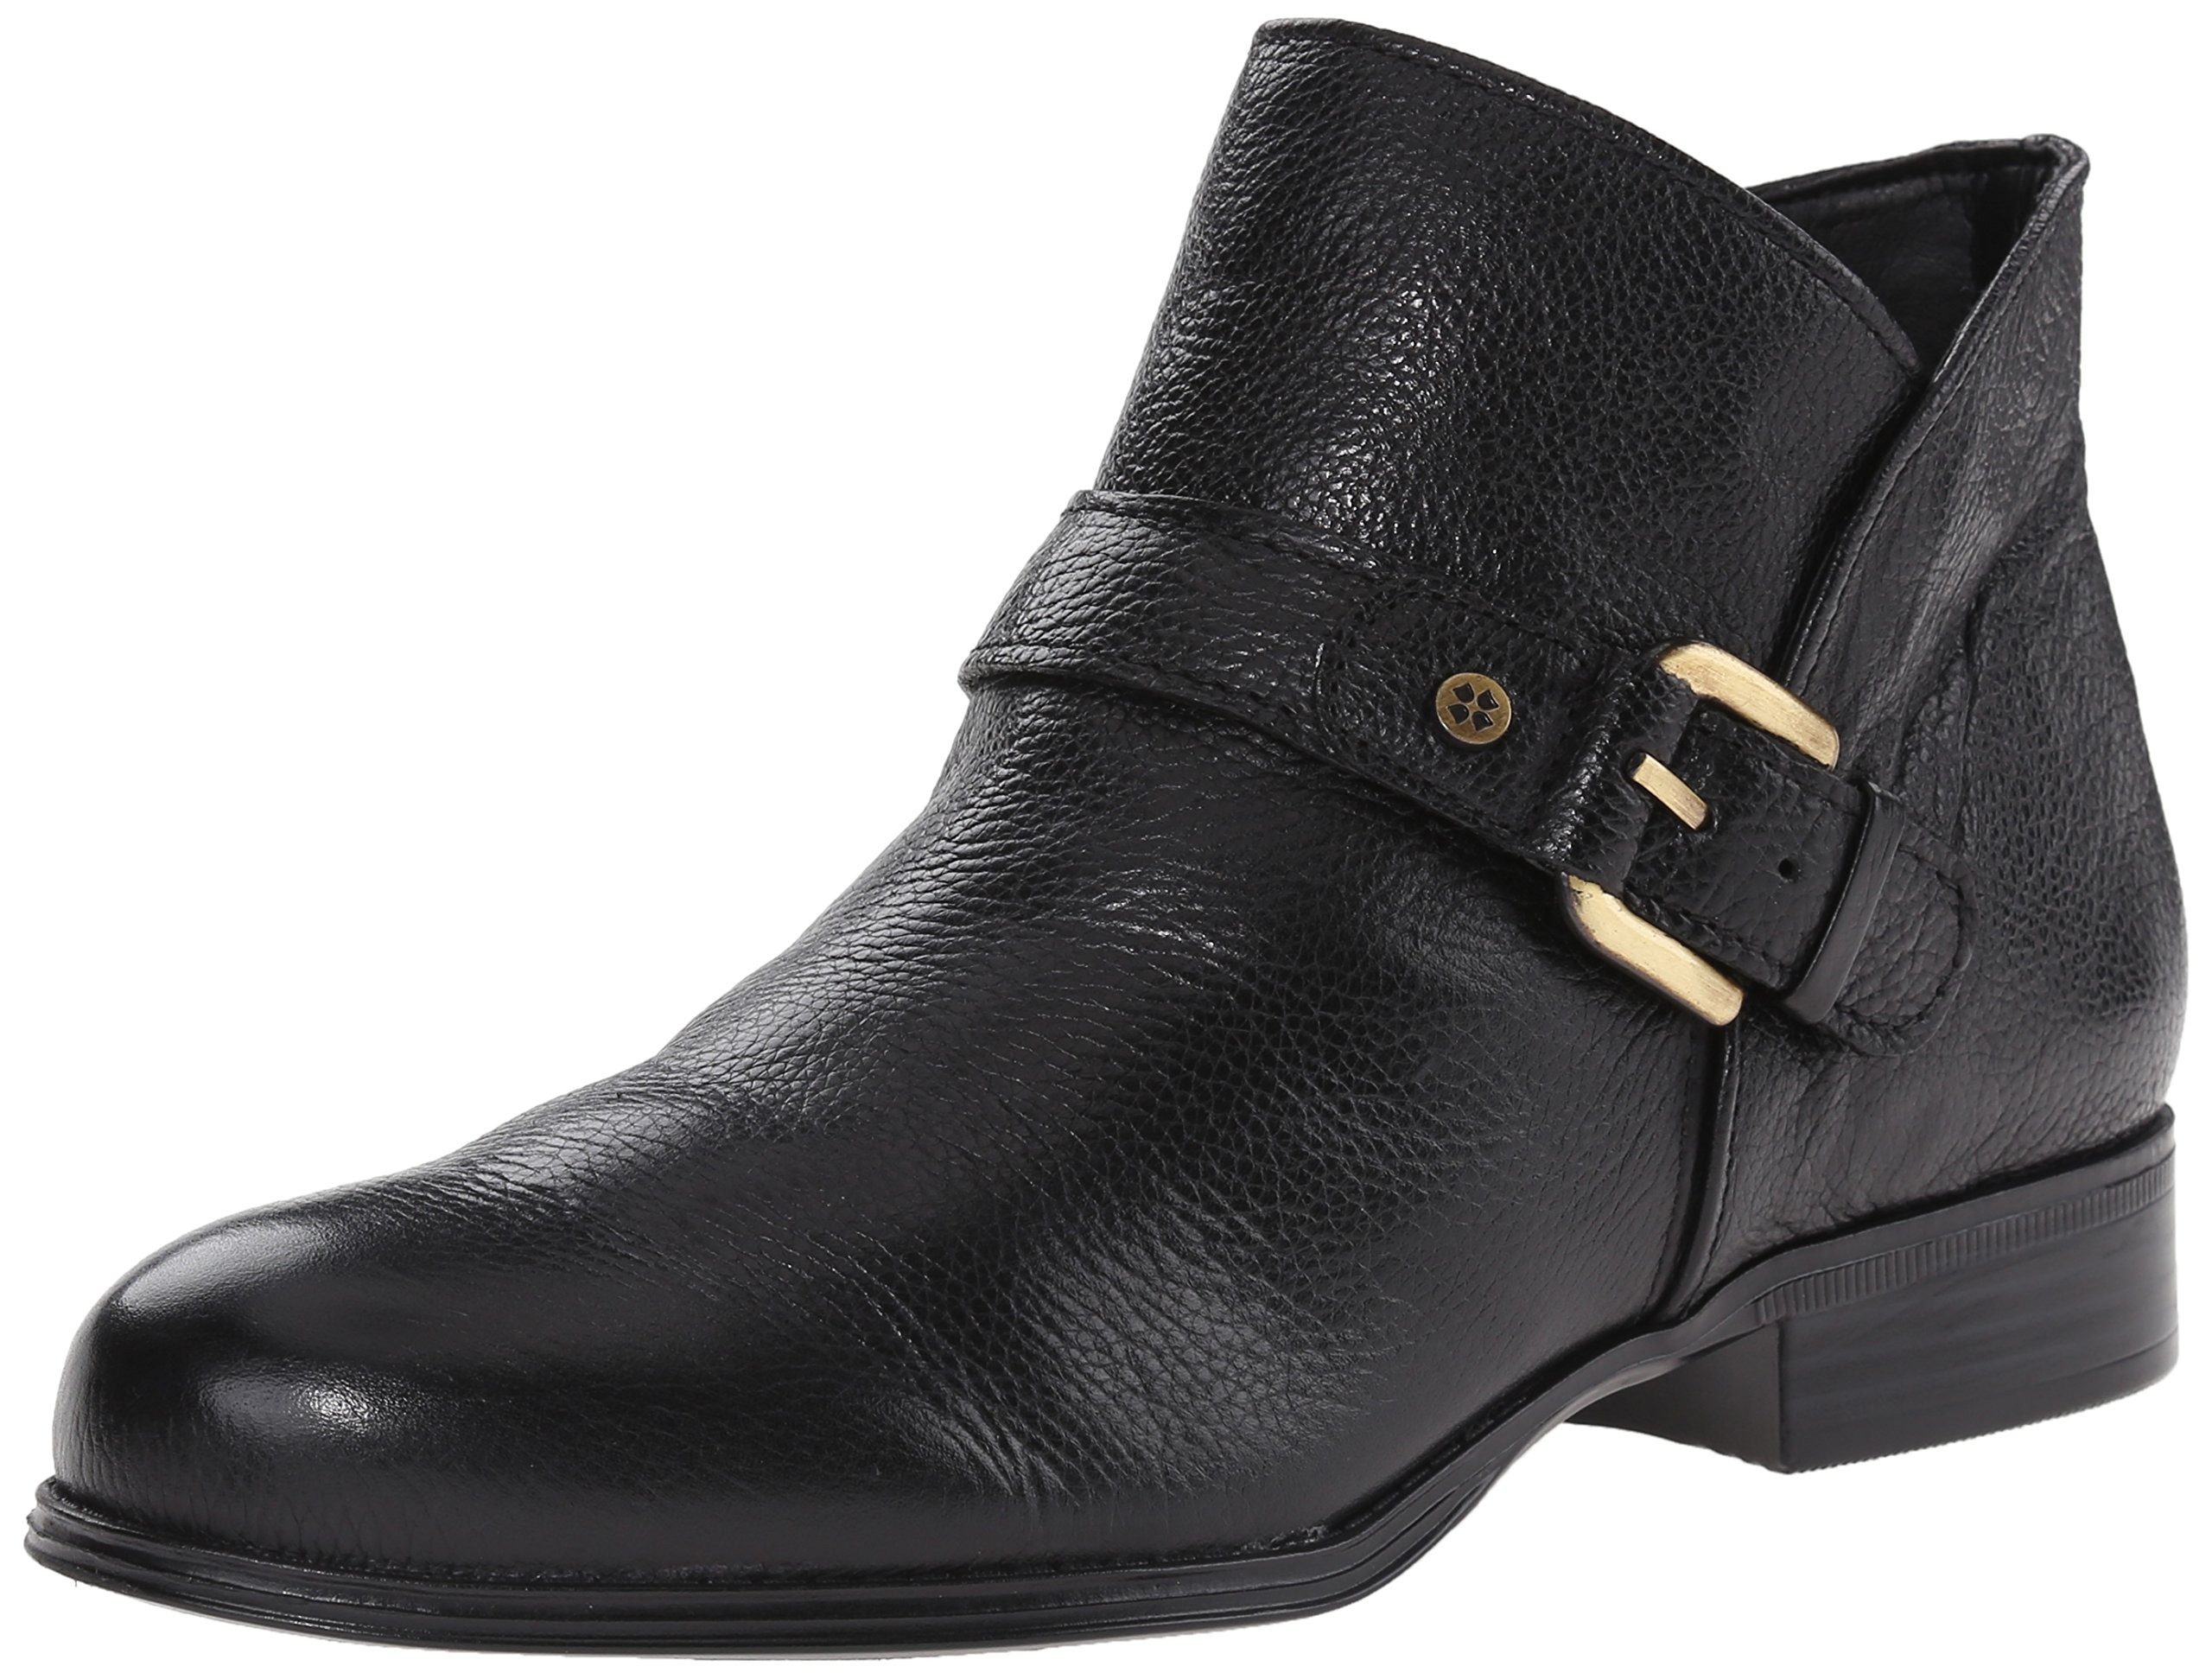 Naturalizer Women's Jarrett Boot, Black, 9 M US